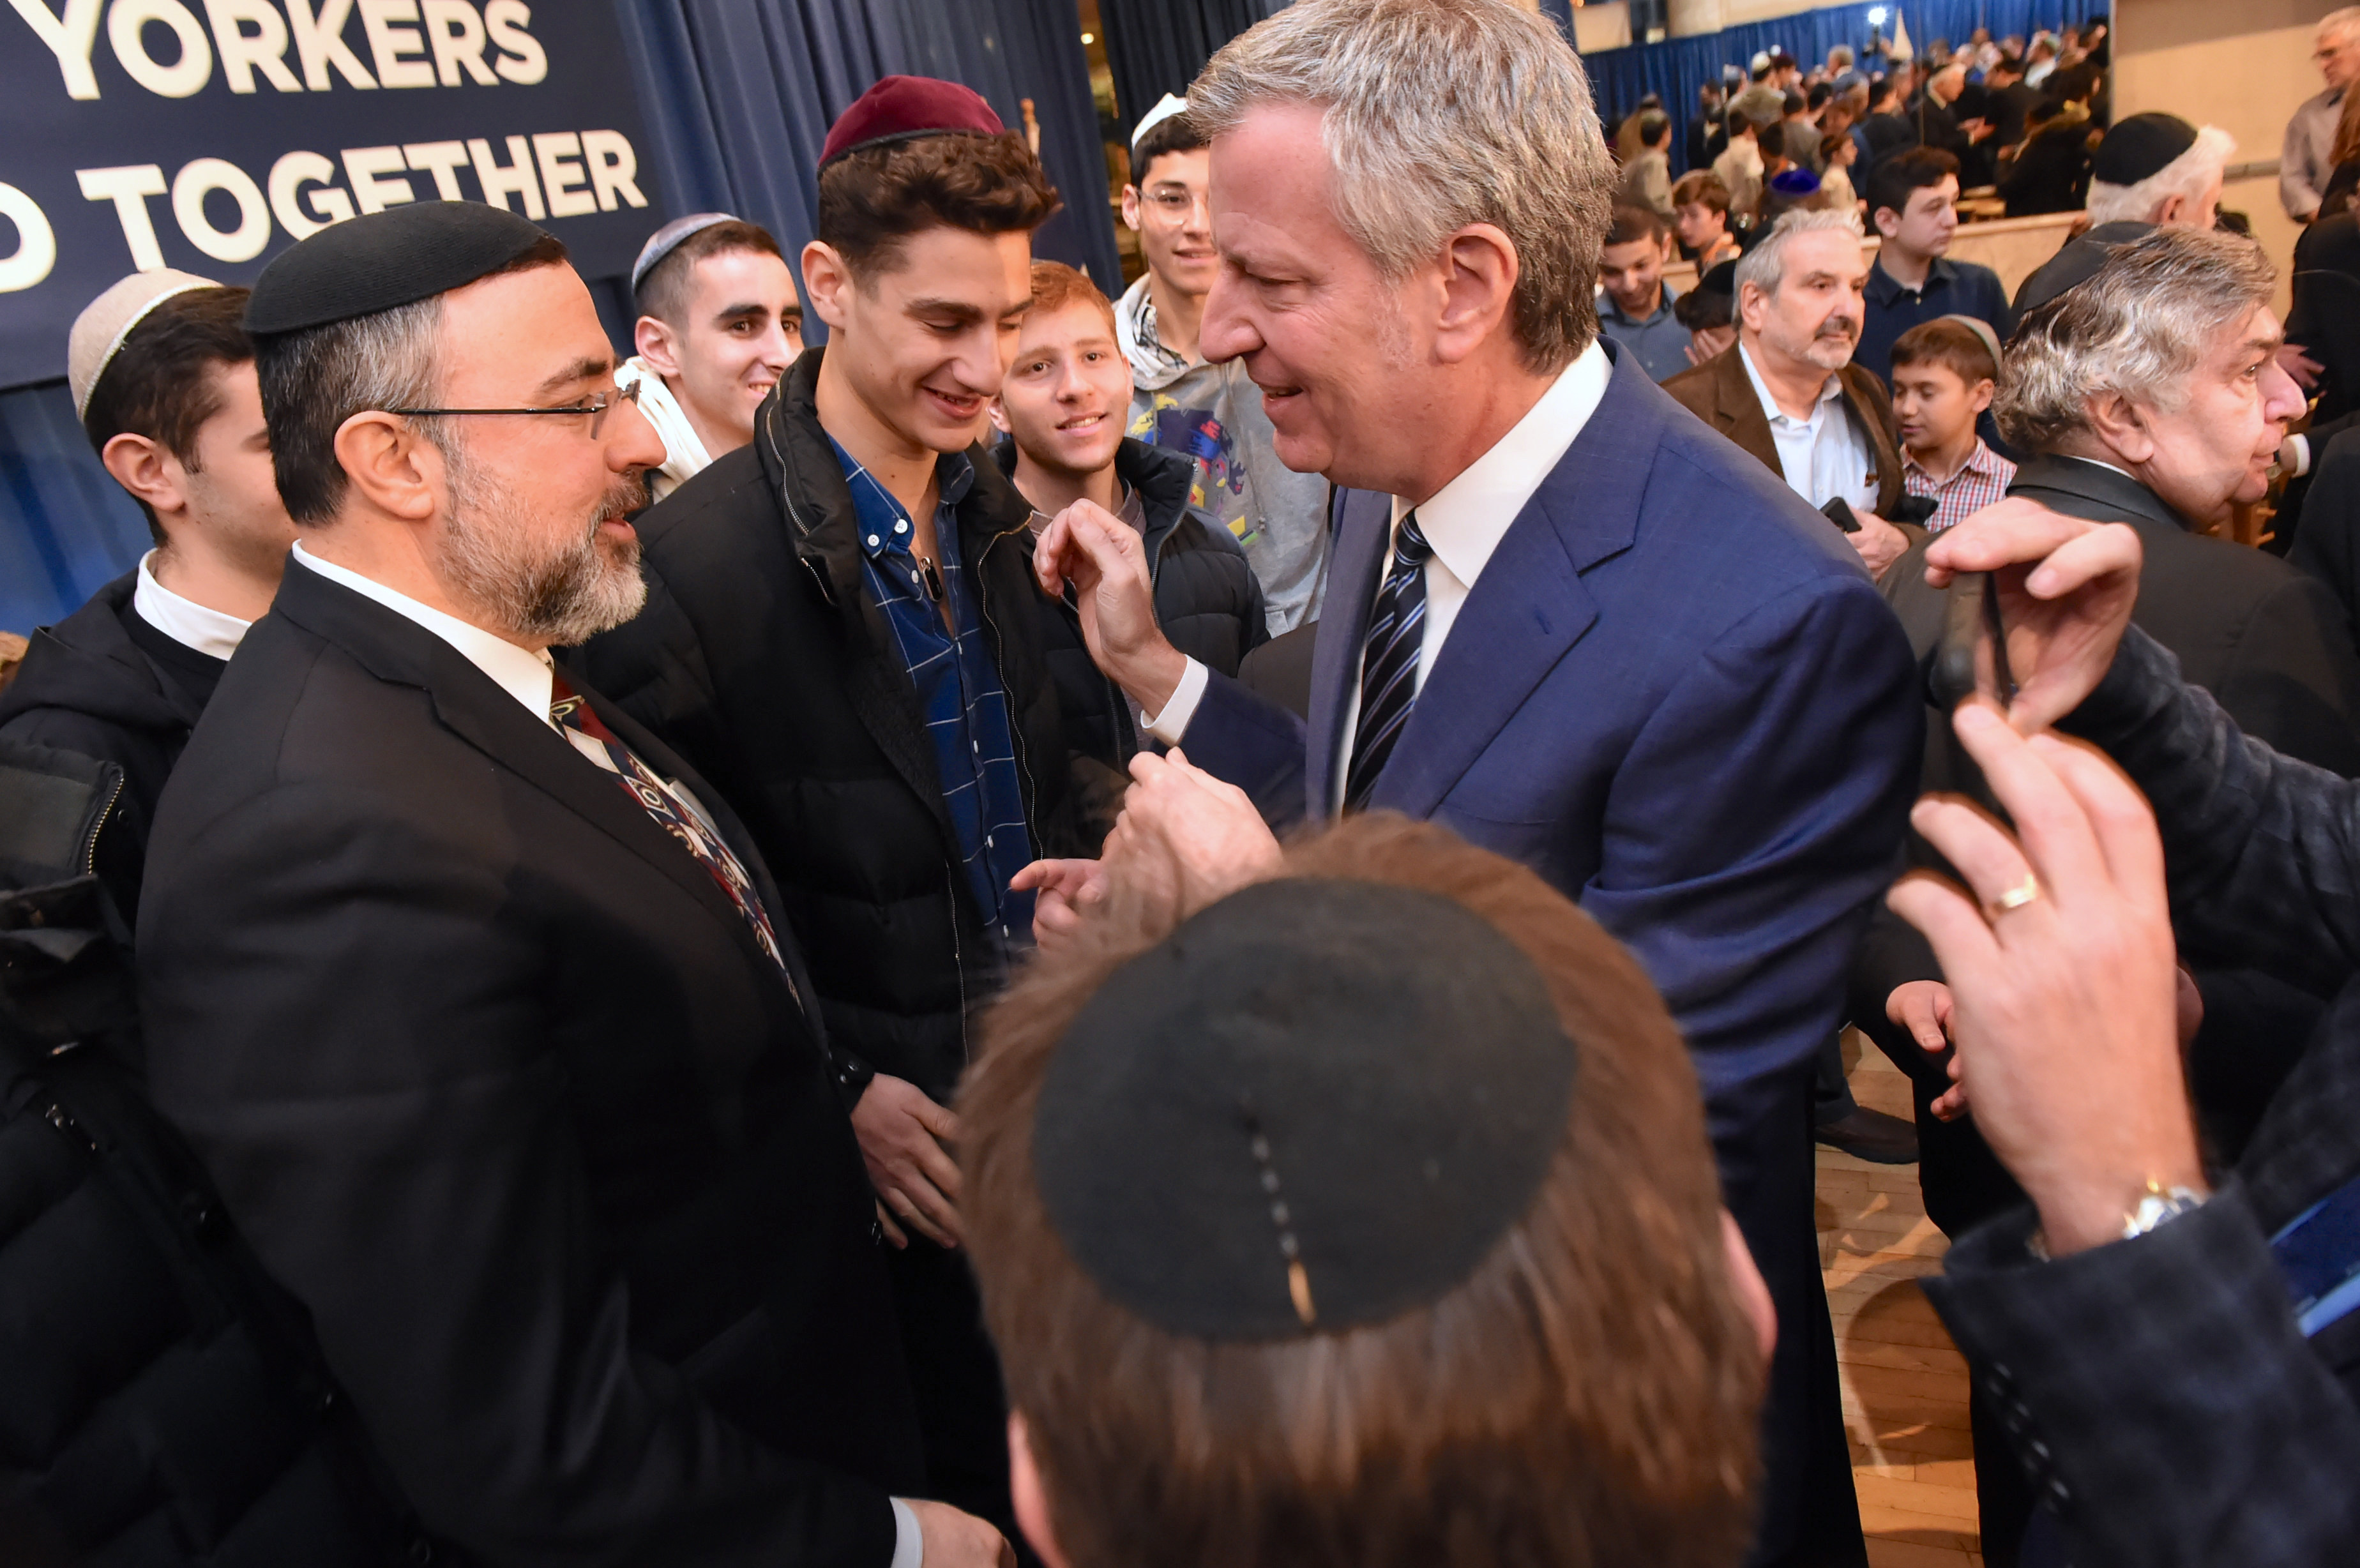 Mayor Bill de Blasio during a rally against anti-Semitism at Kingsway Jewish Center (Photo: Todd Maisel)